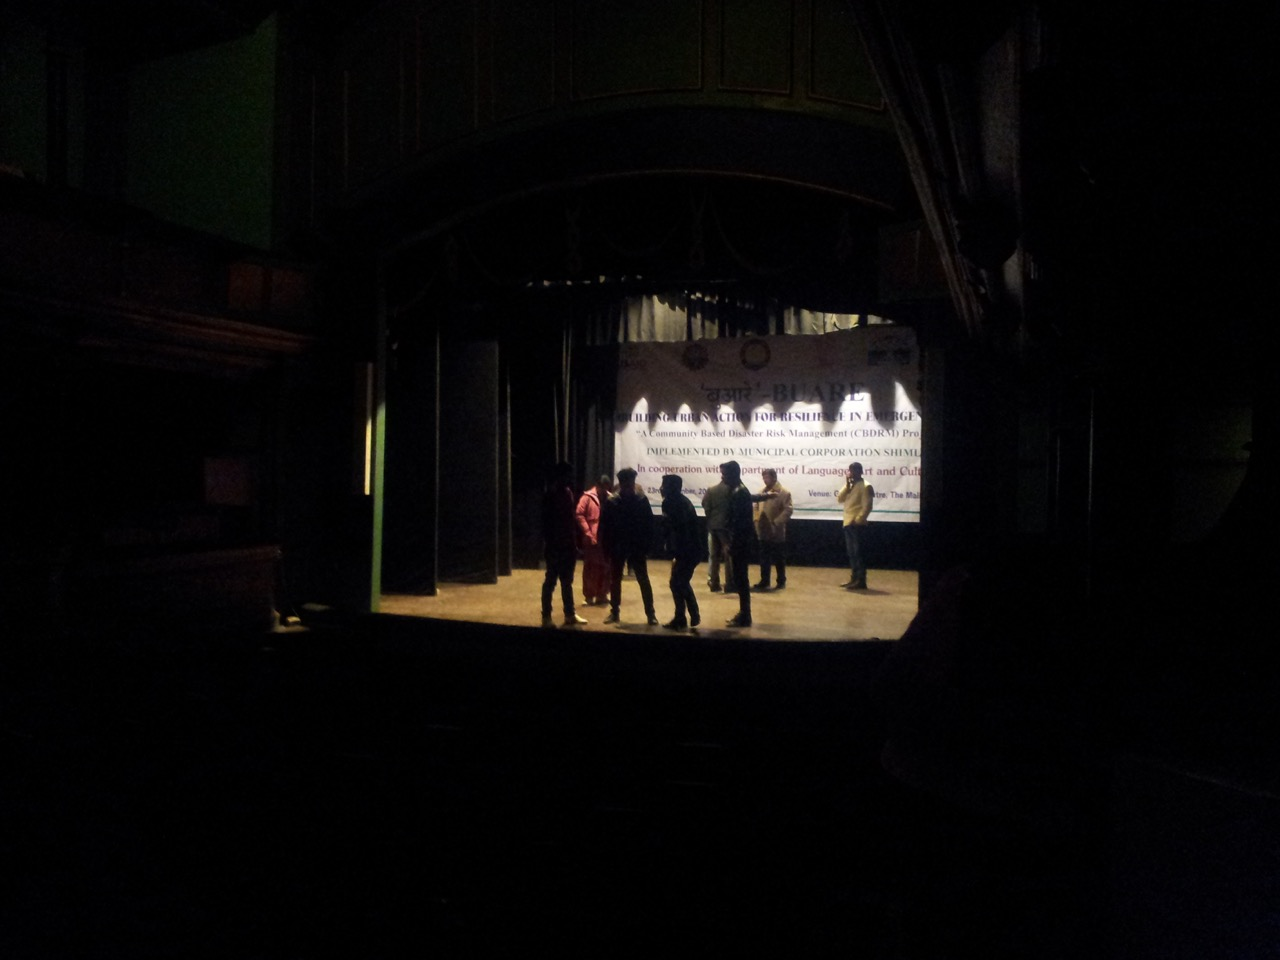 A group was rehearsing their play in the old theatre.